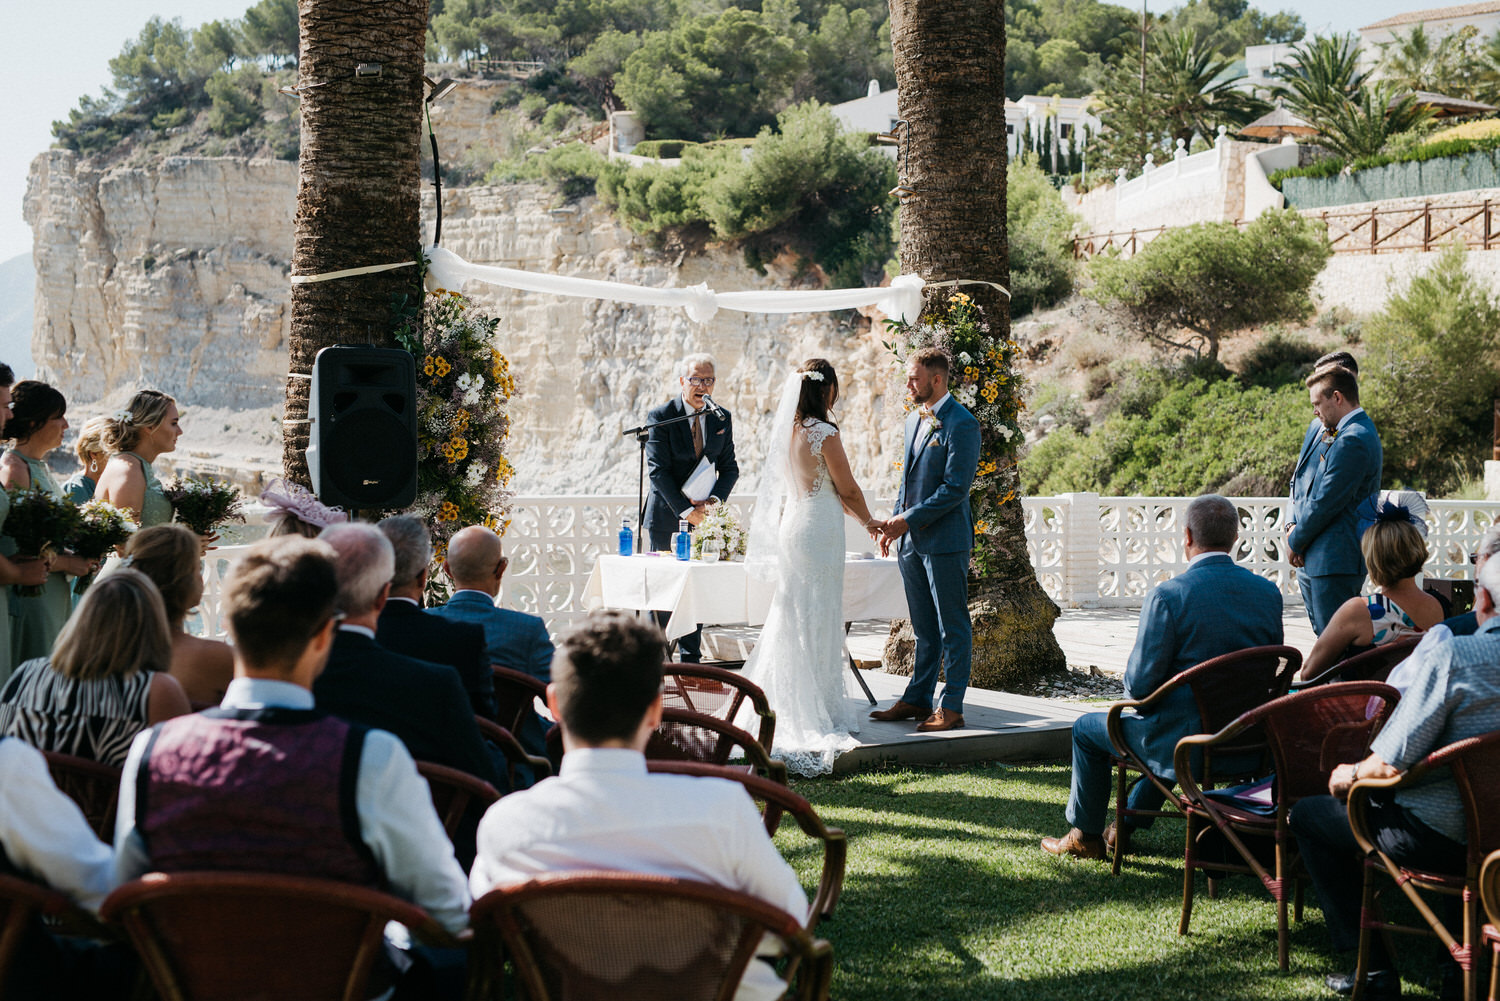 Wedding at Casa Marina Suites (Benissa)